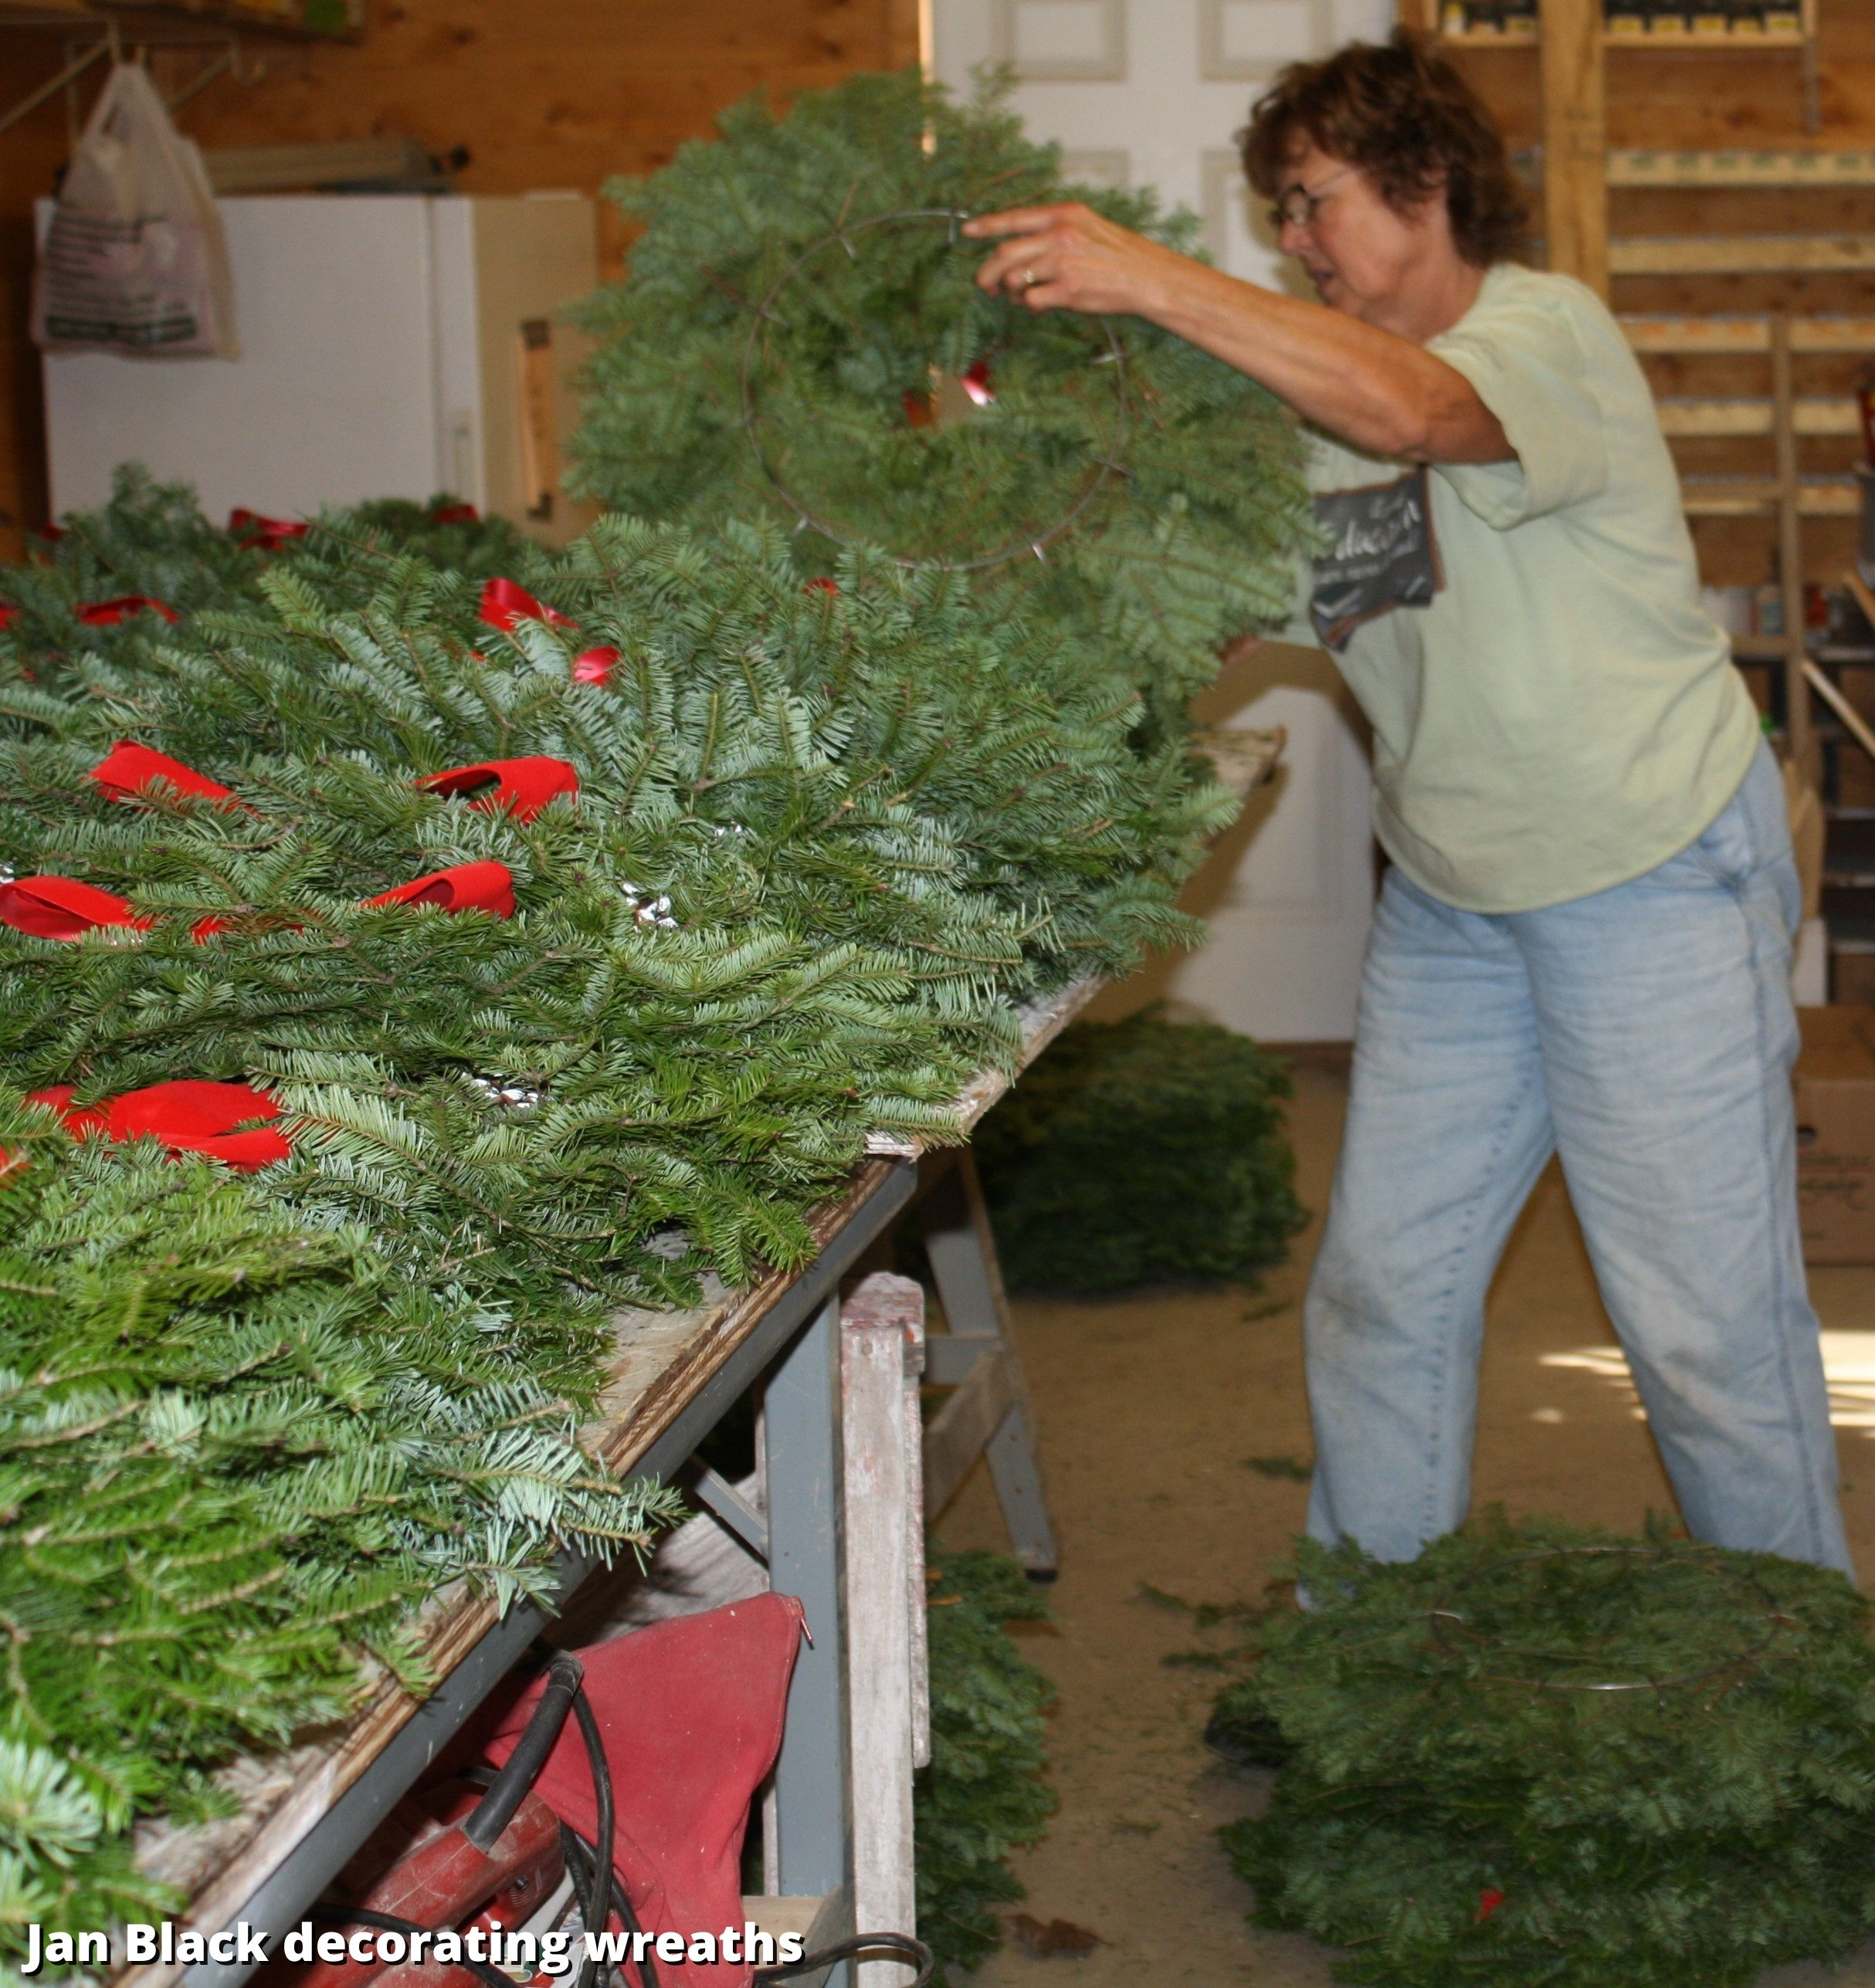 jan with wreaths